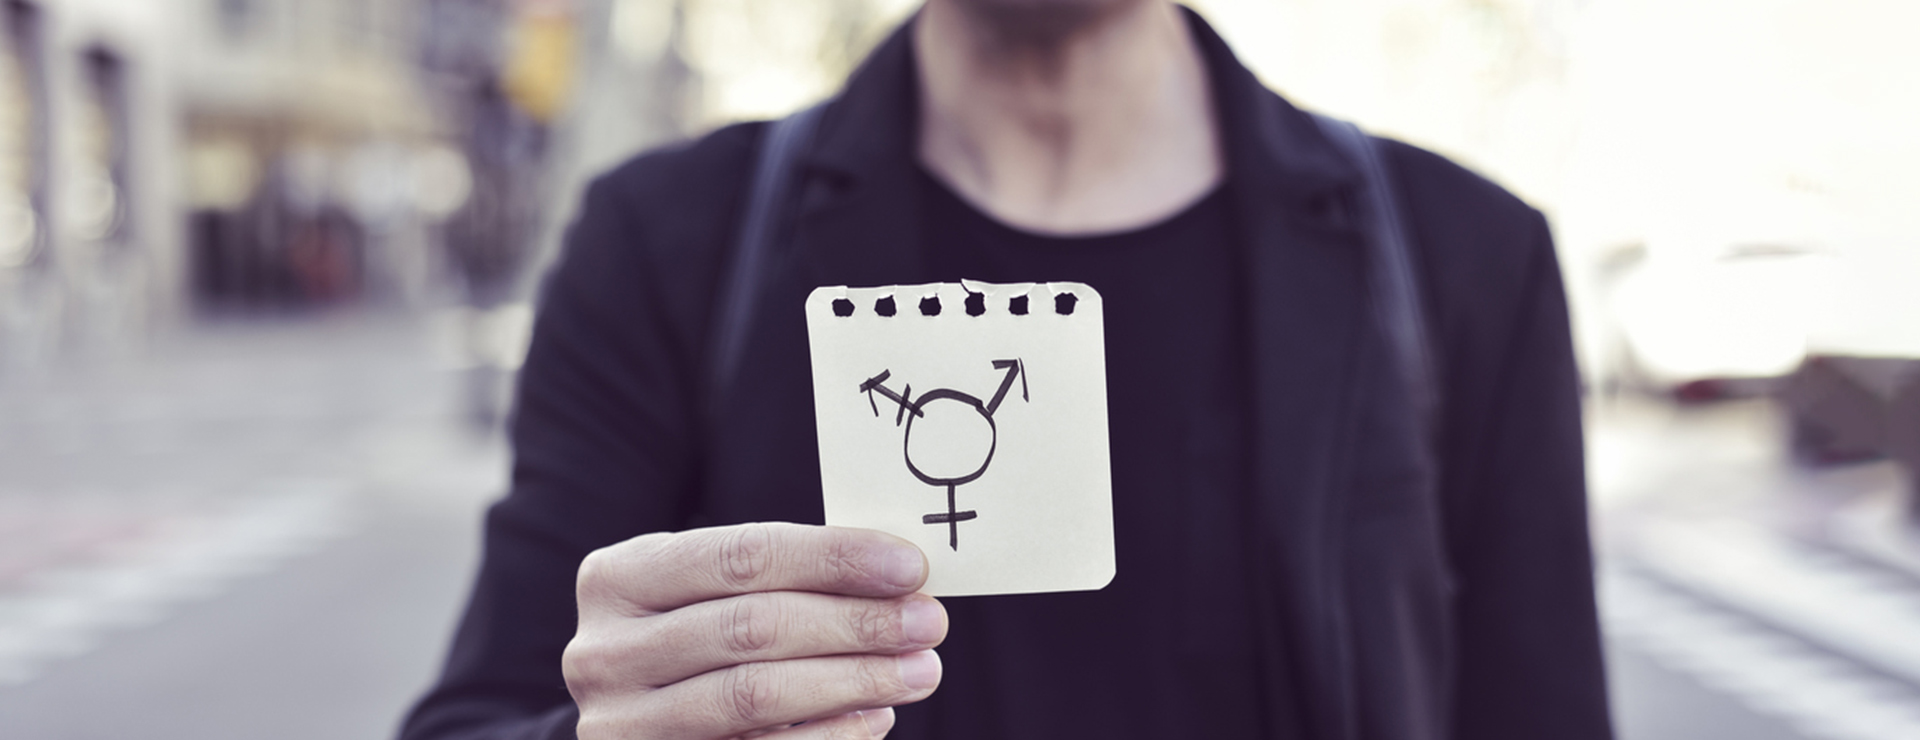 A person holds up a piece of paper with combined gender symbols.